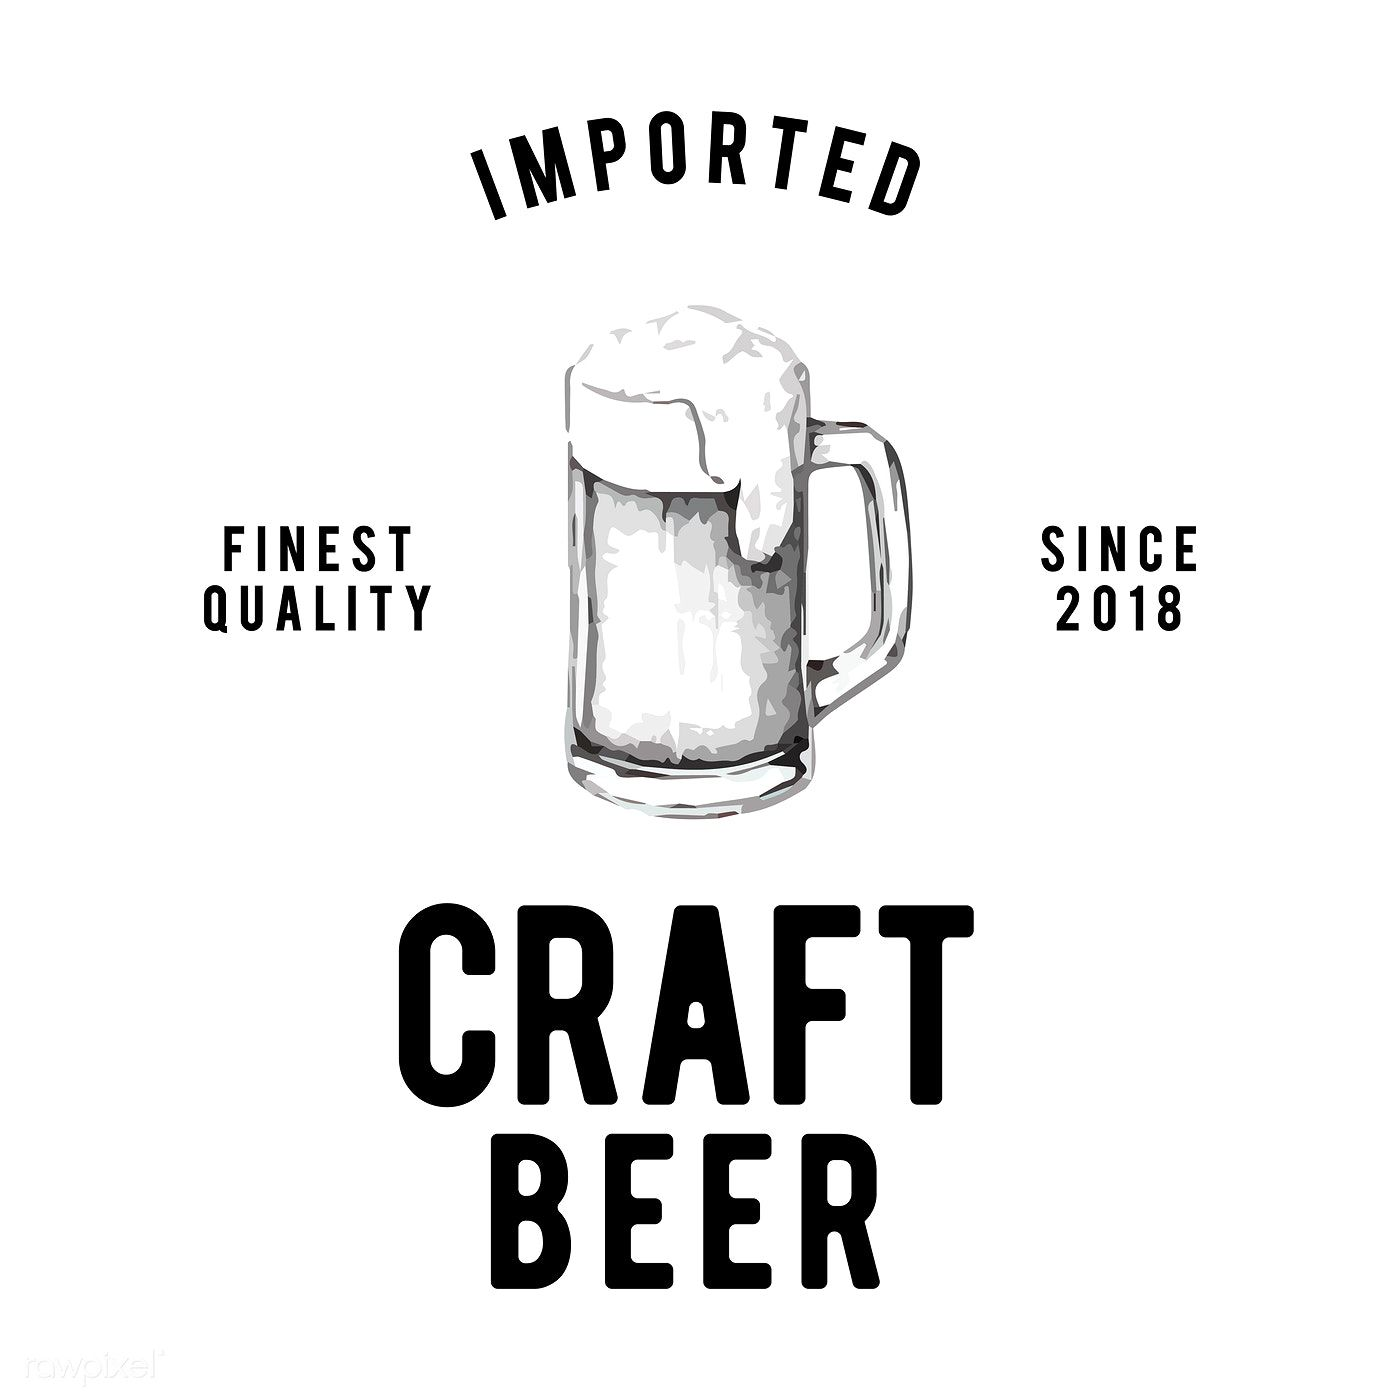 Craft Beer Logo Design Vector Free Image By Rawpixel Com